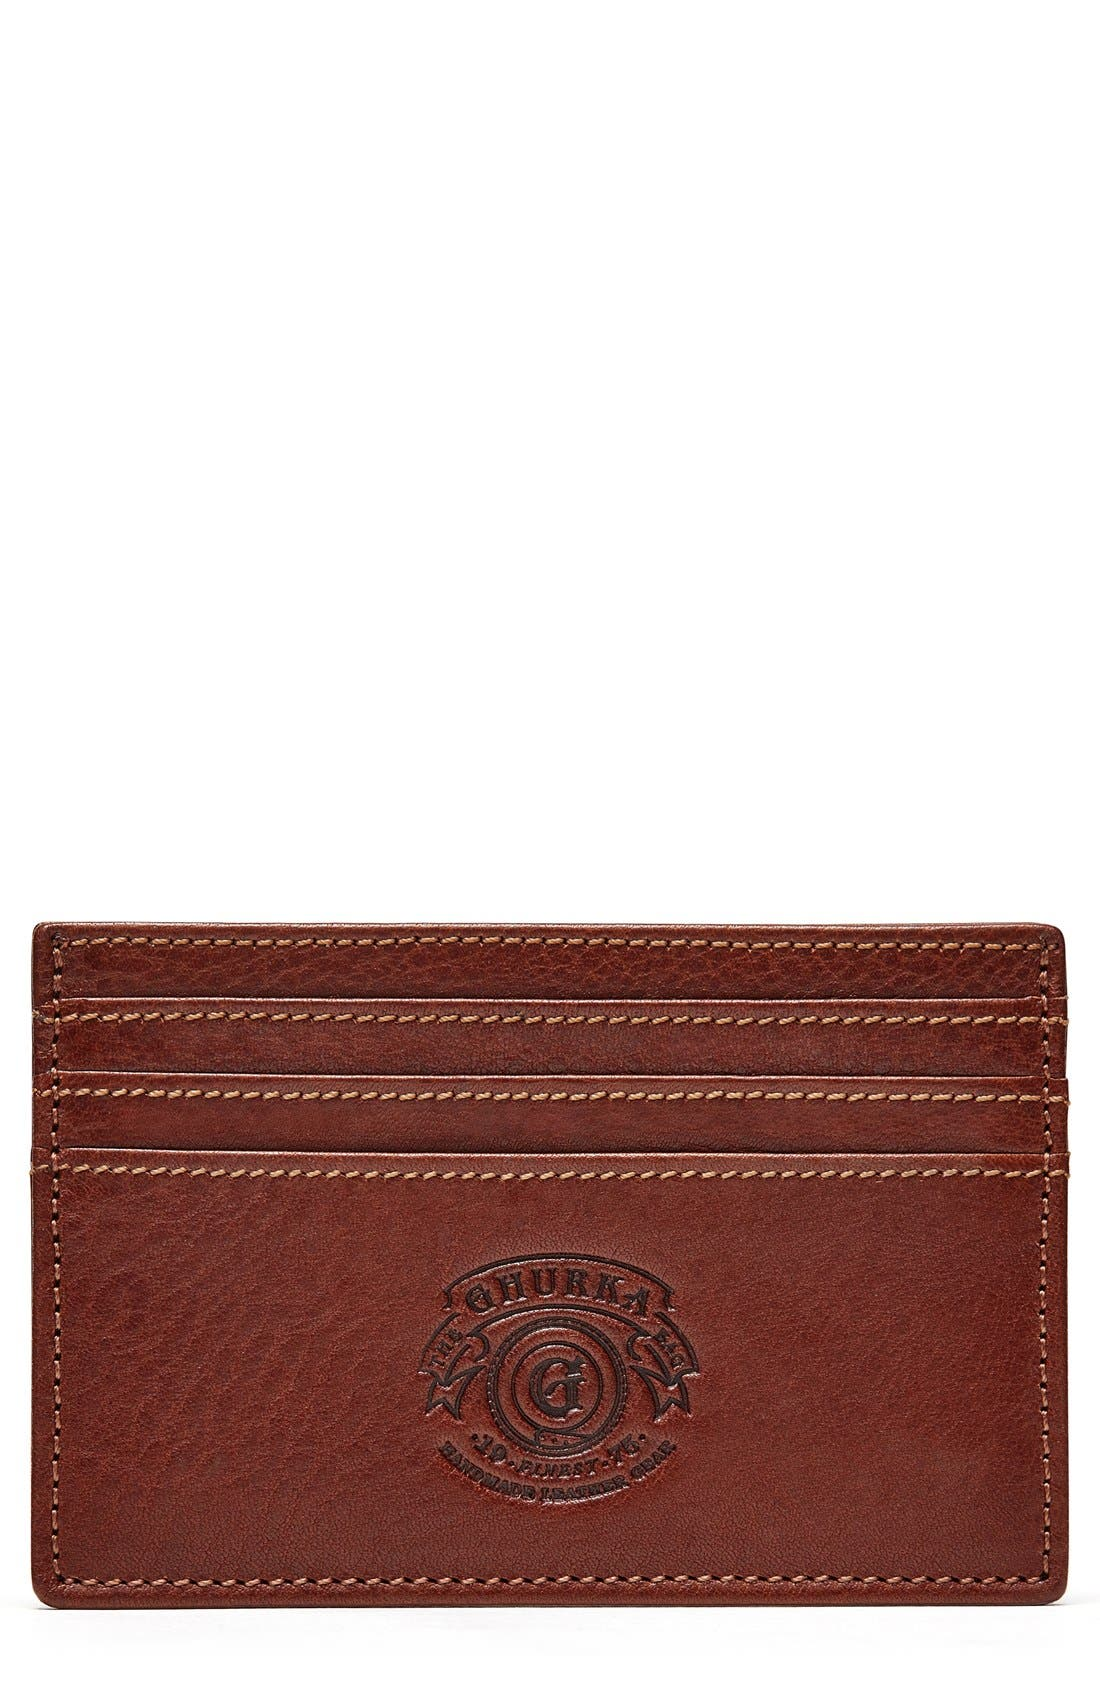 Ghurka Leather Card Case